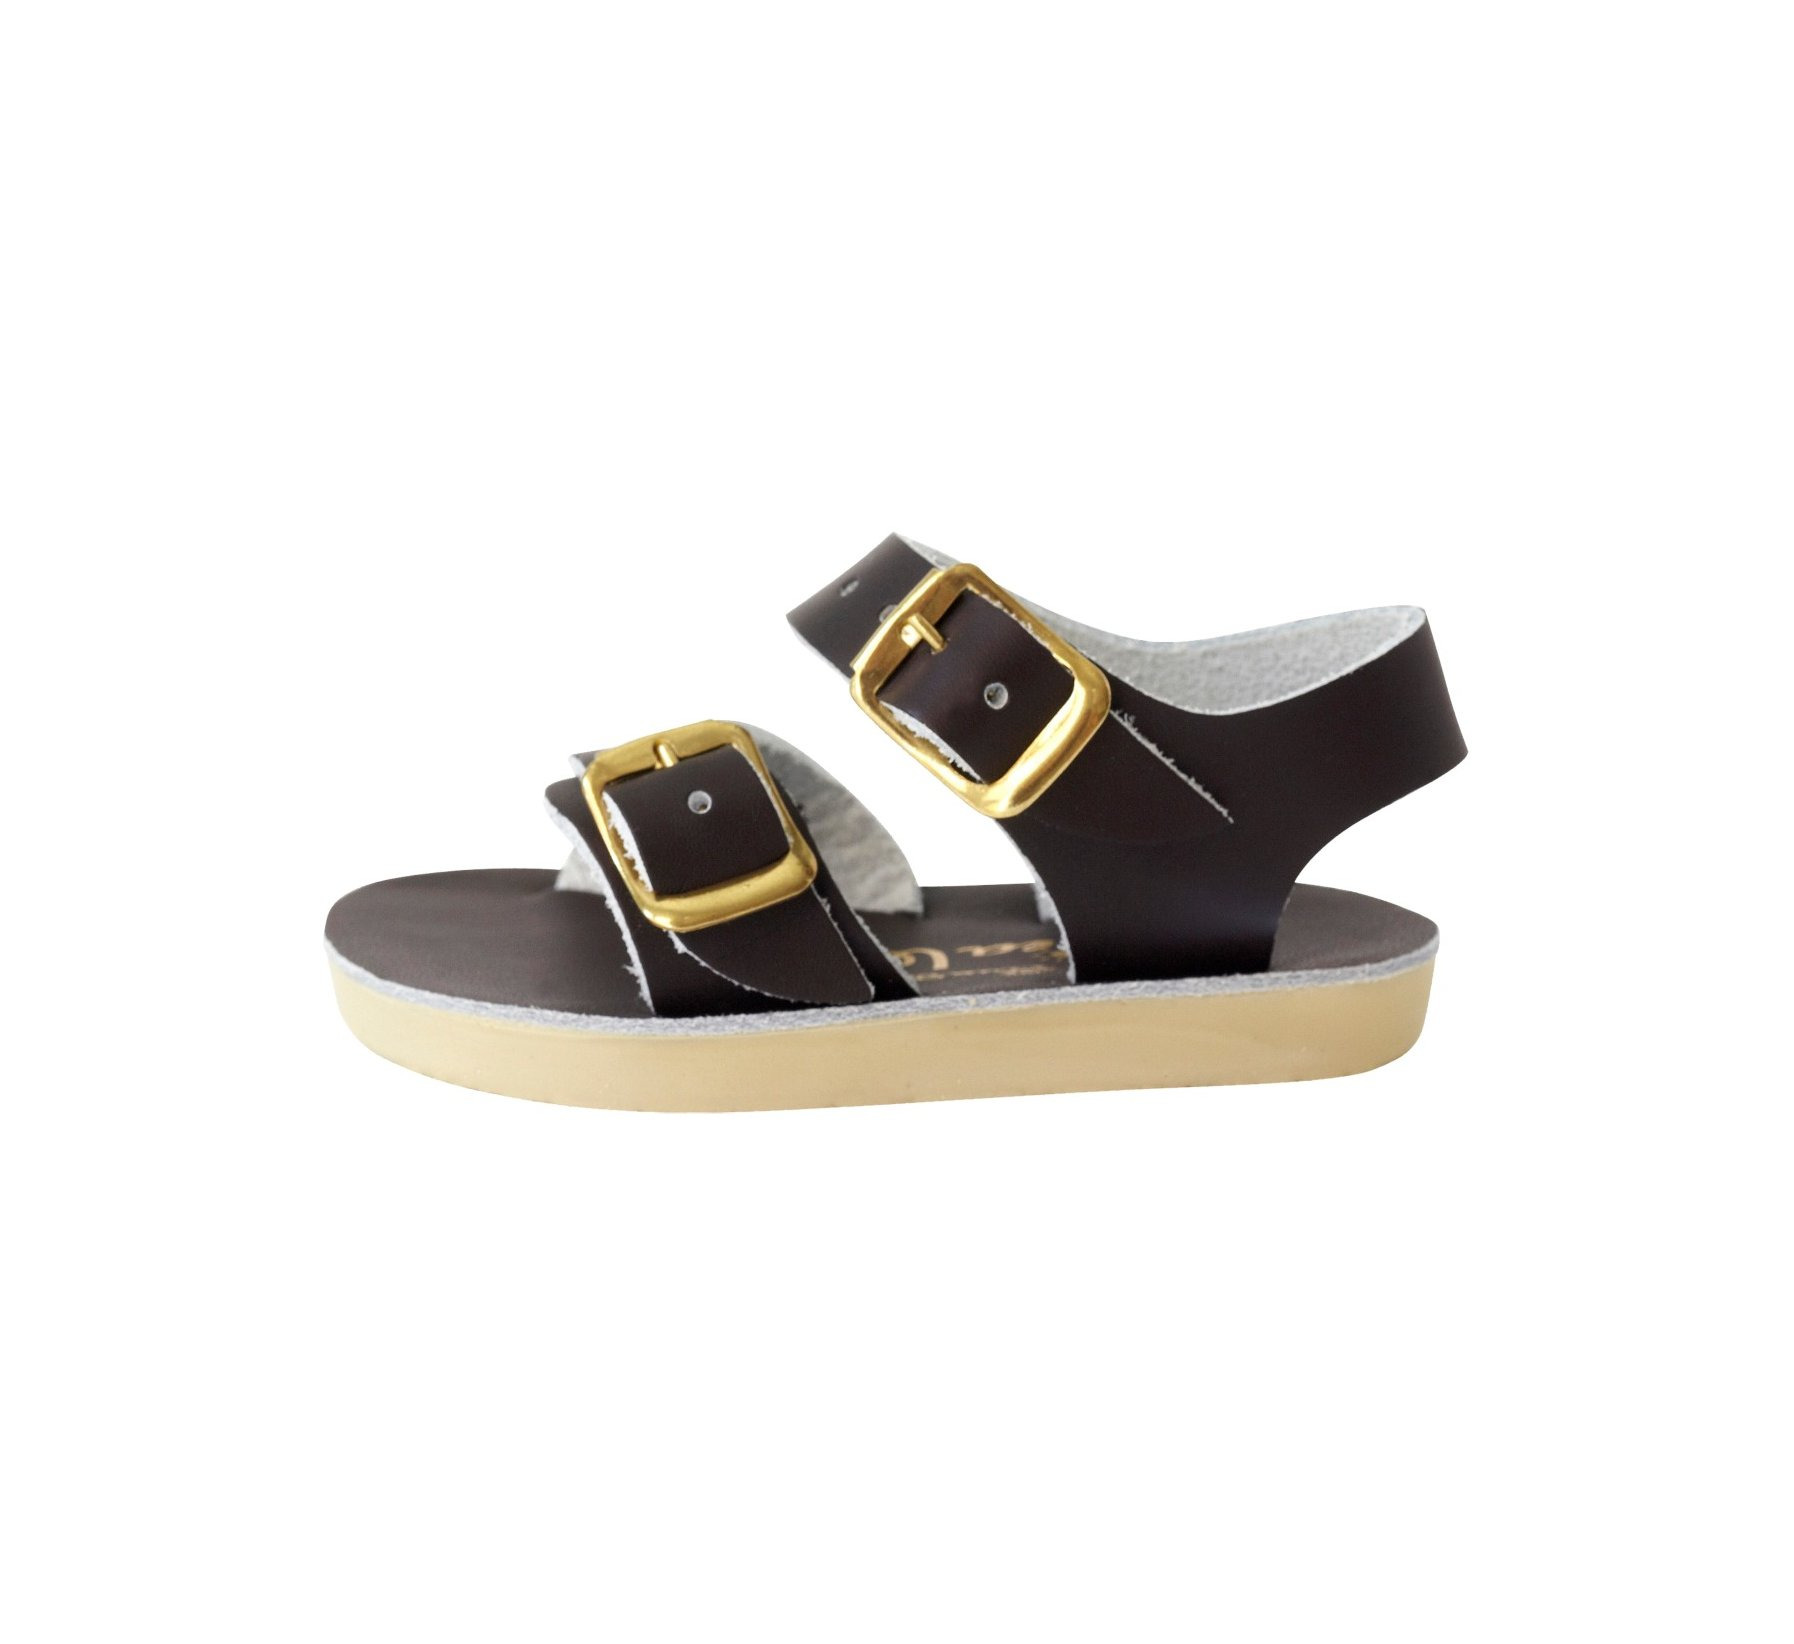 Seawee Brown - Salt Water Sandals